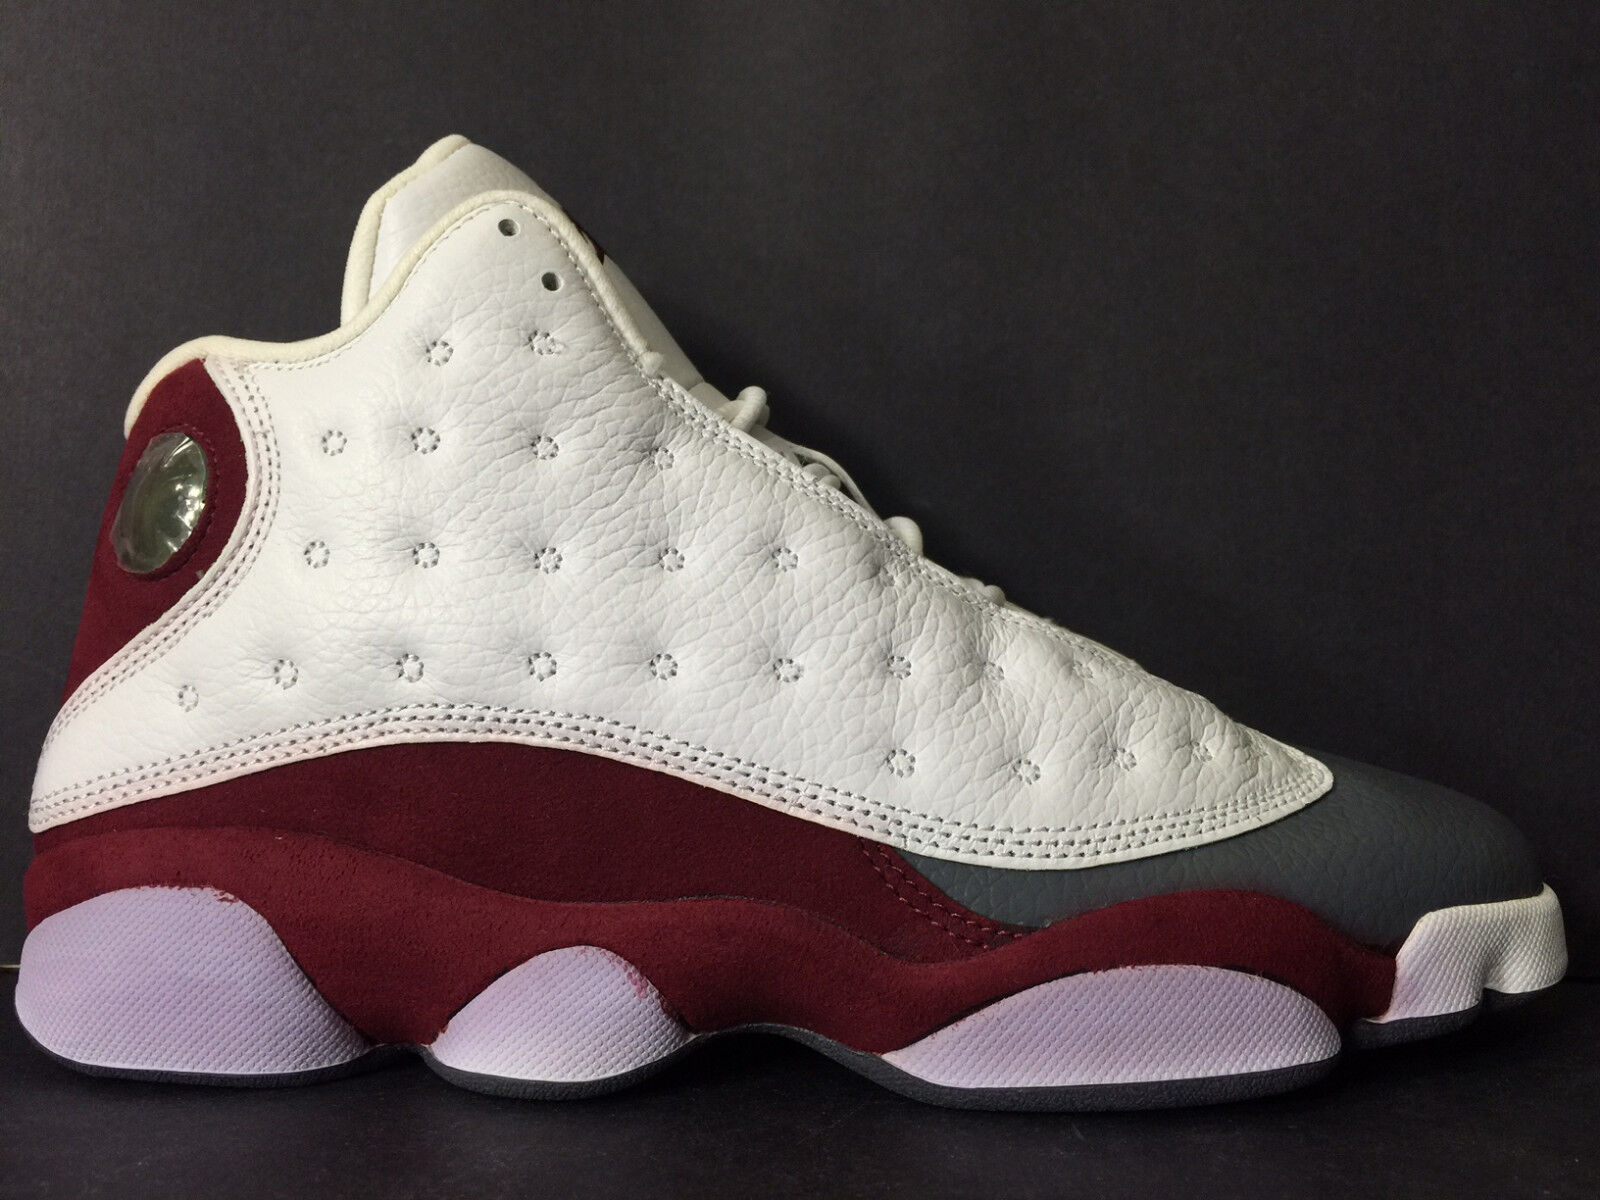 d73d0c5e46fdd0 ... 2004 DS NEW NIKE AIR JORDAN XIII 13 13 13 RETRO STEEL TOE MEN 7.5 WOMEN  ...